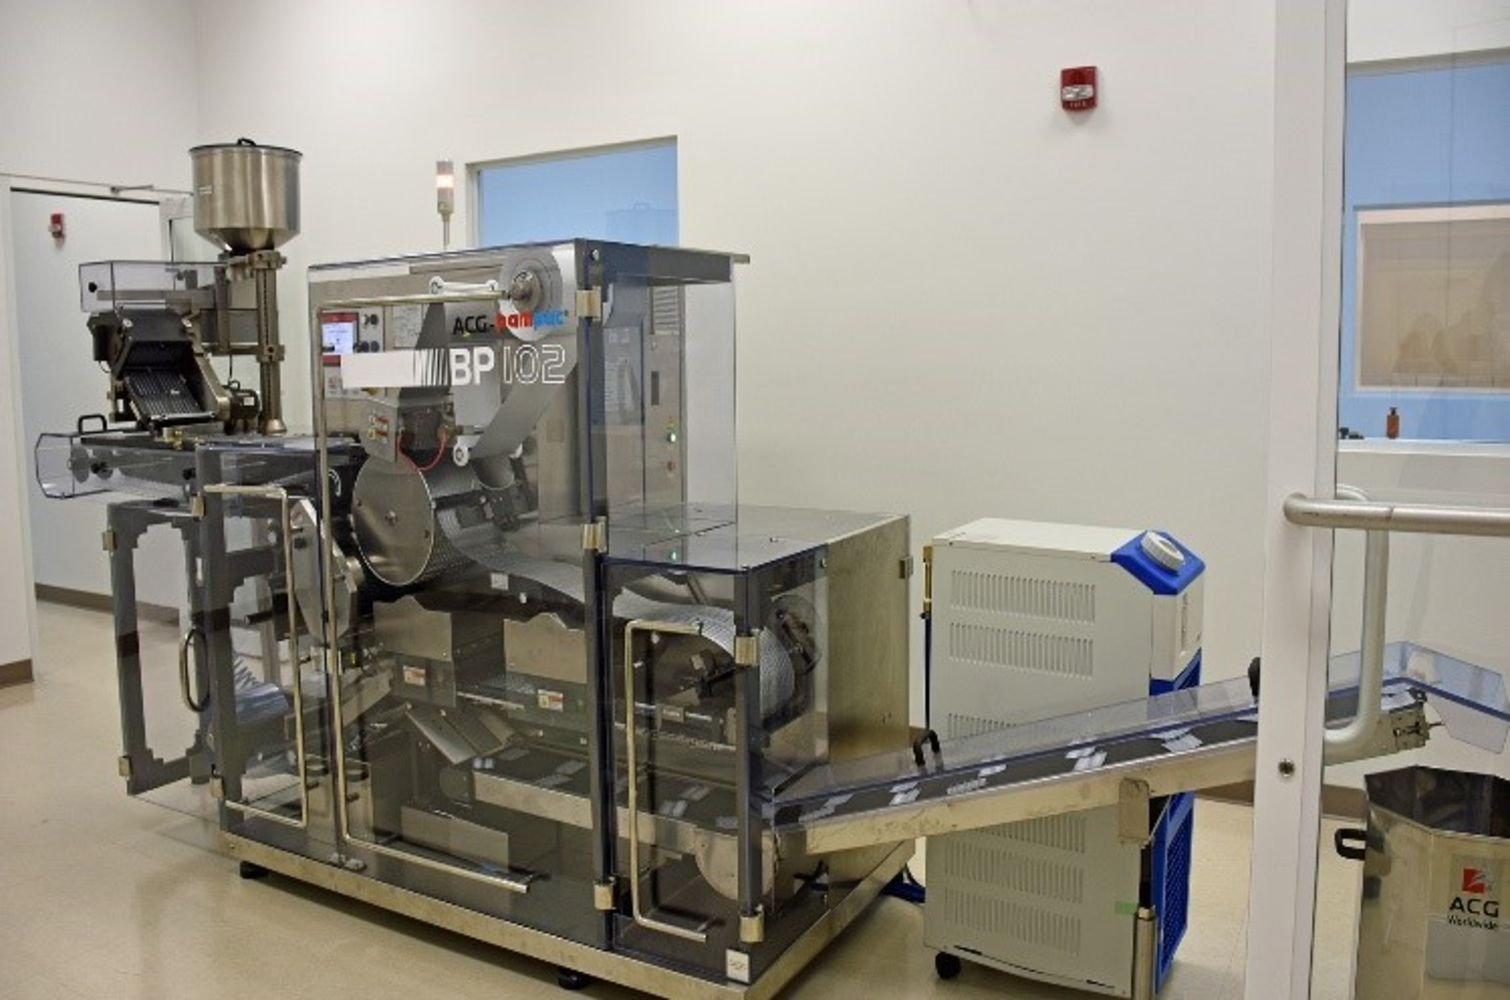 QUALITY LAB AND PILOT PLANT PROCESSING ASSETS FROM A LEADING PHARMACEUTICAL COMPANY